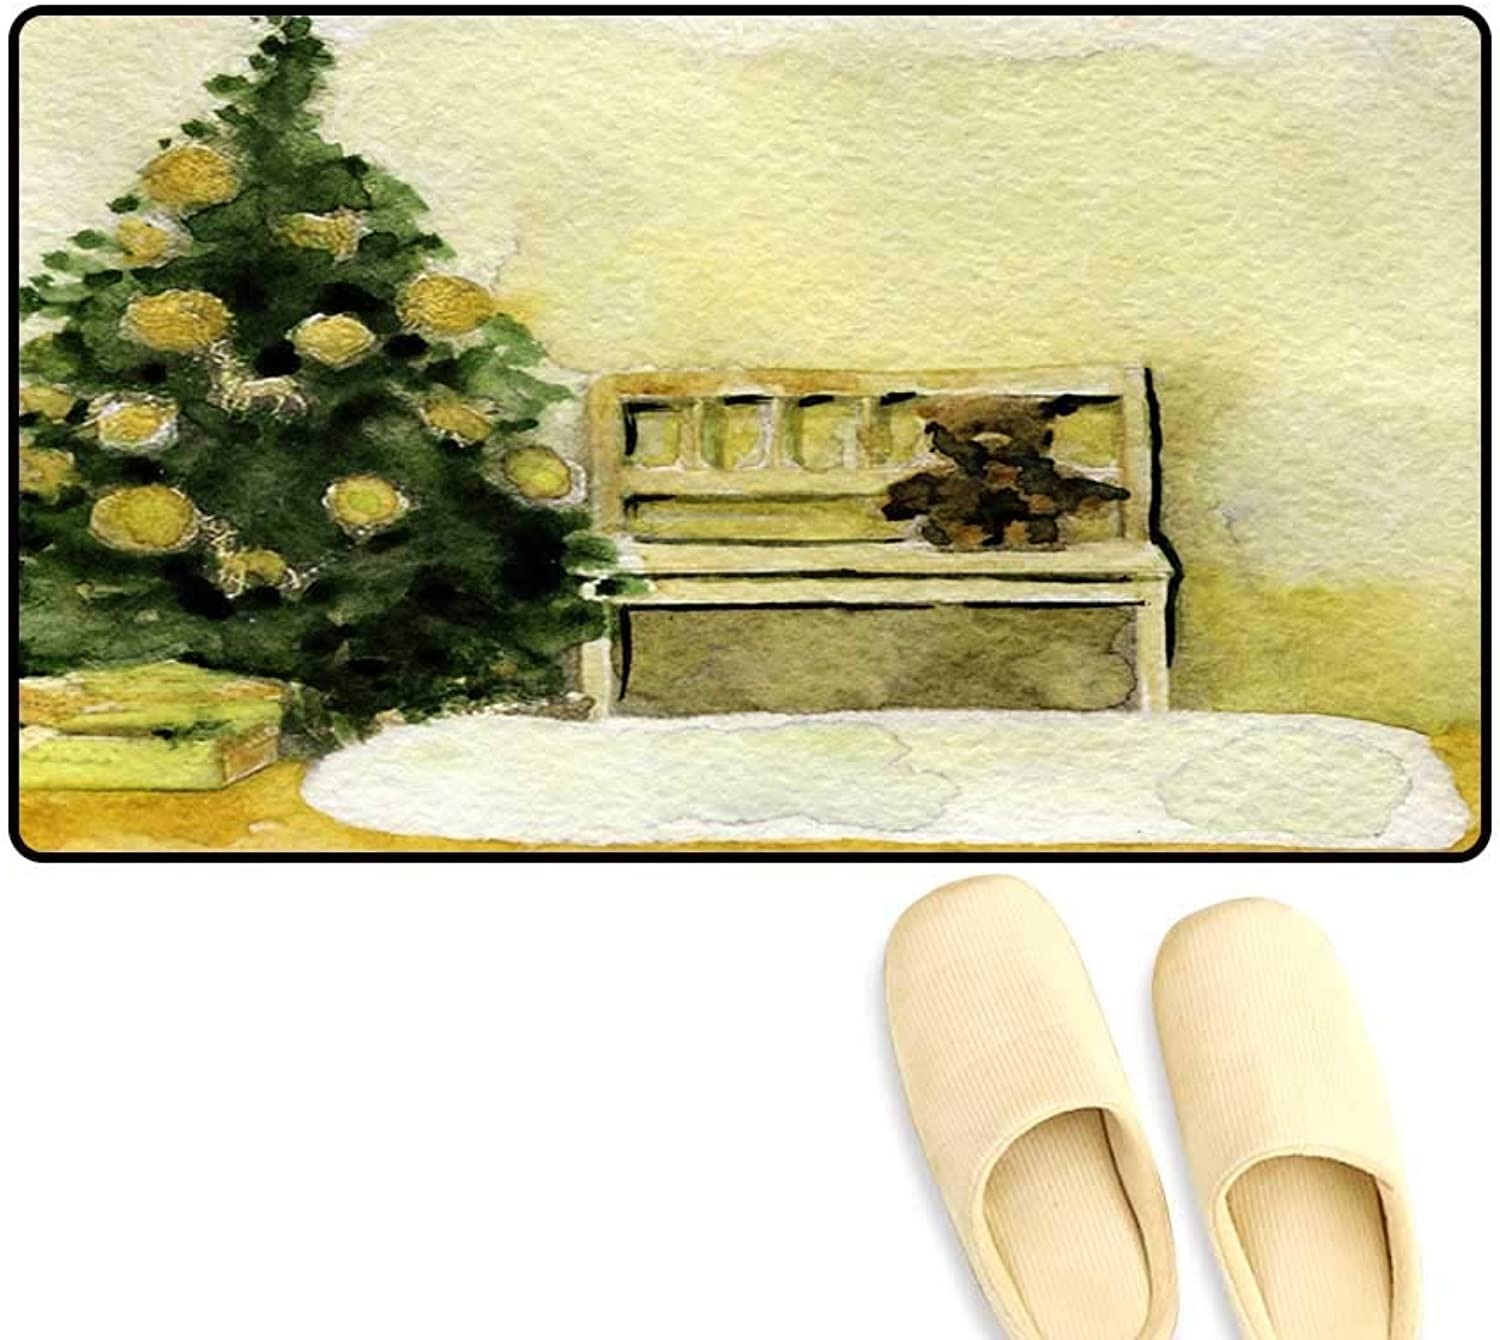 Antiskid Doormat Watercolor Sketch of Stylish Christmas Interior Decorate wi Tree an Bear